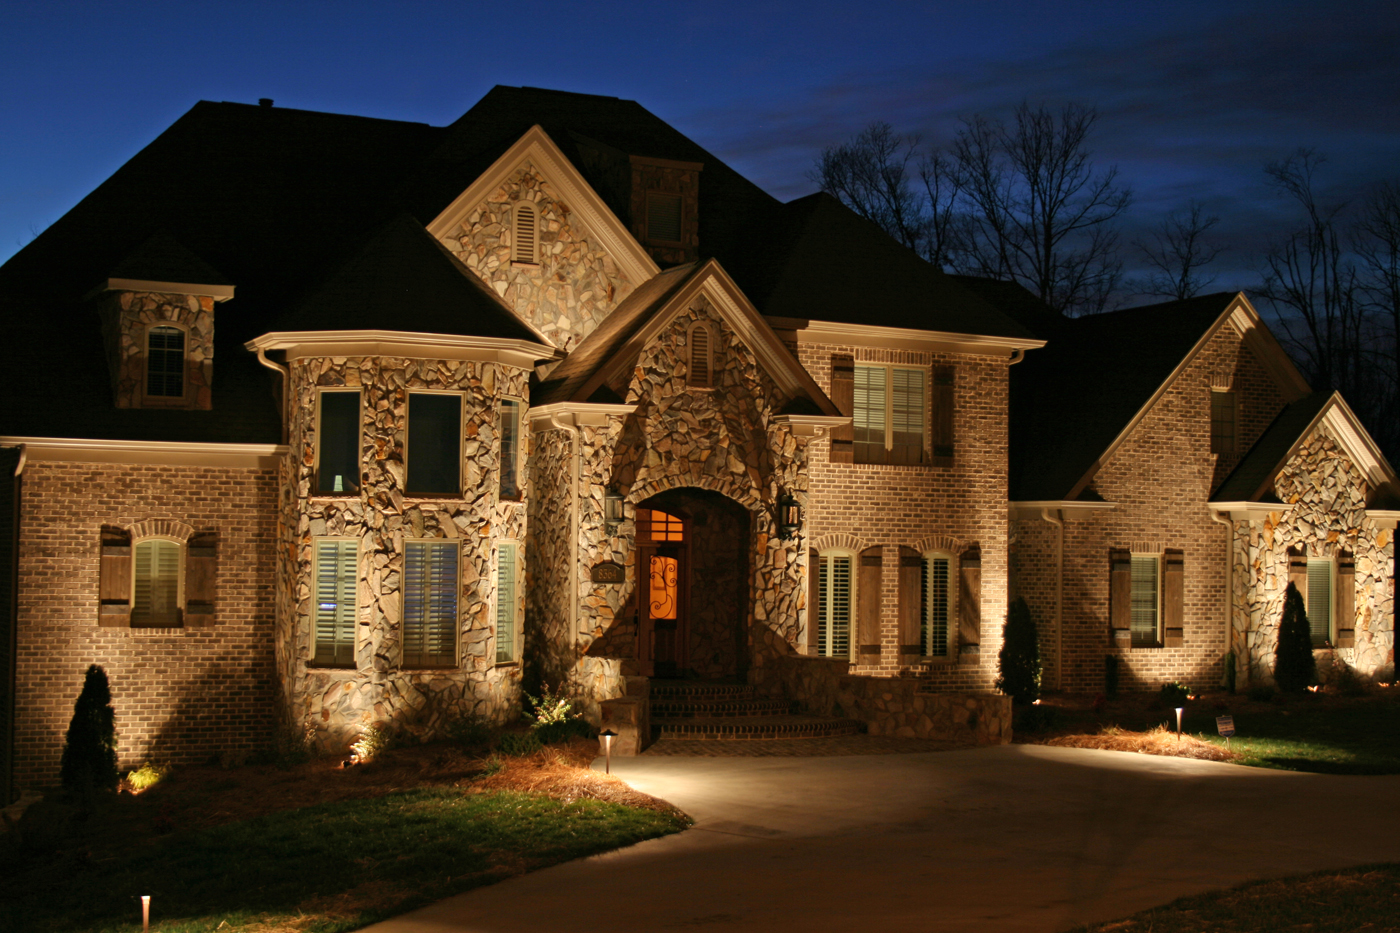 Western nc residential outdoor lighting fixtures high quality low voltage outdoor lighting for your asheville hendersonville flat rock or brevard home